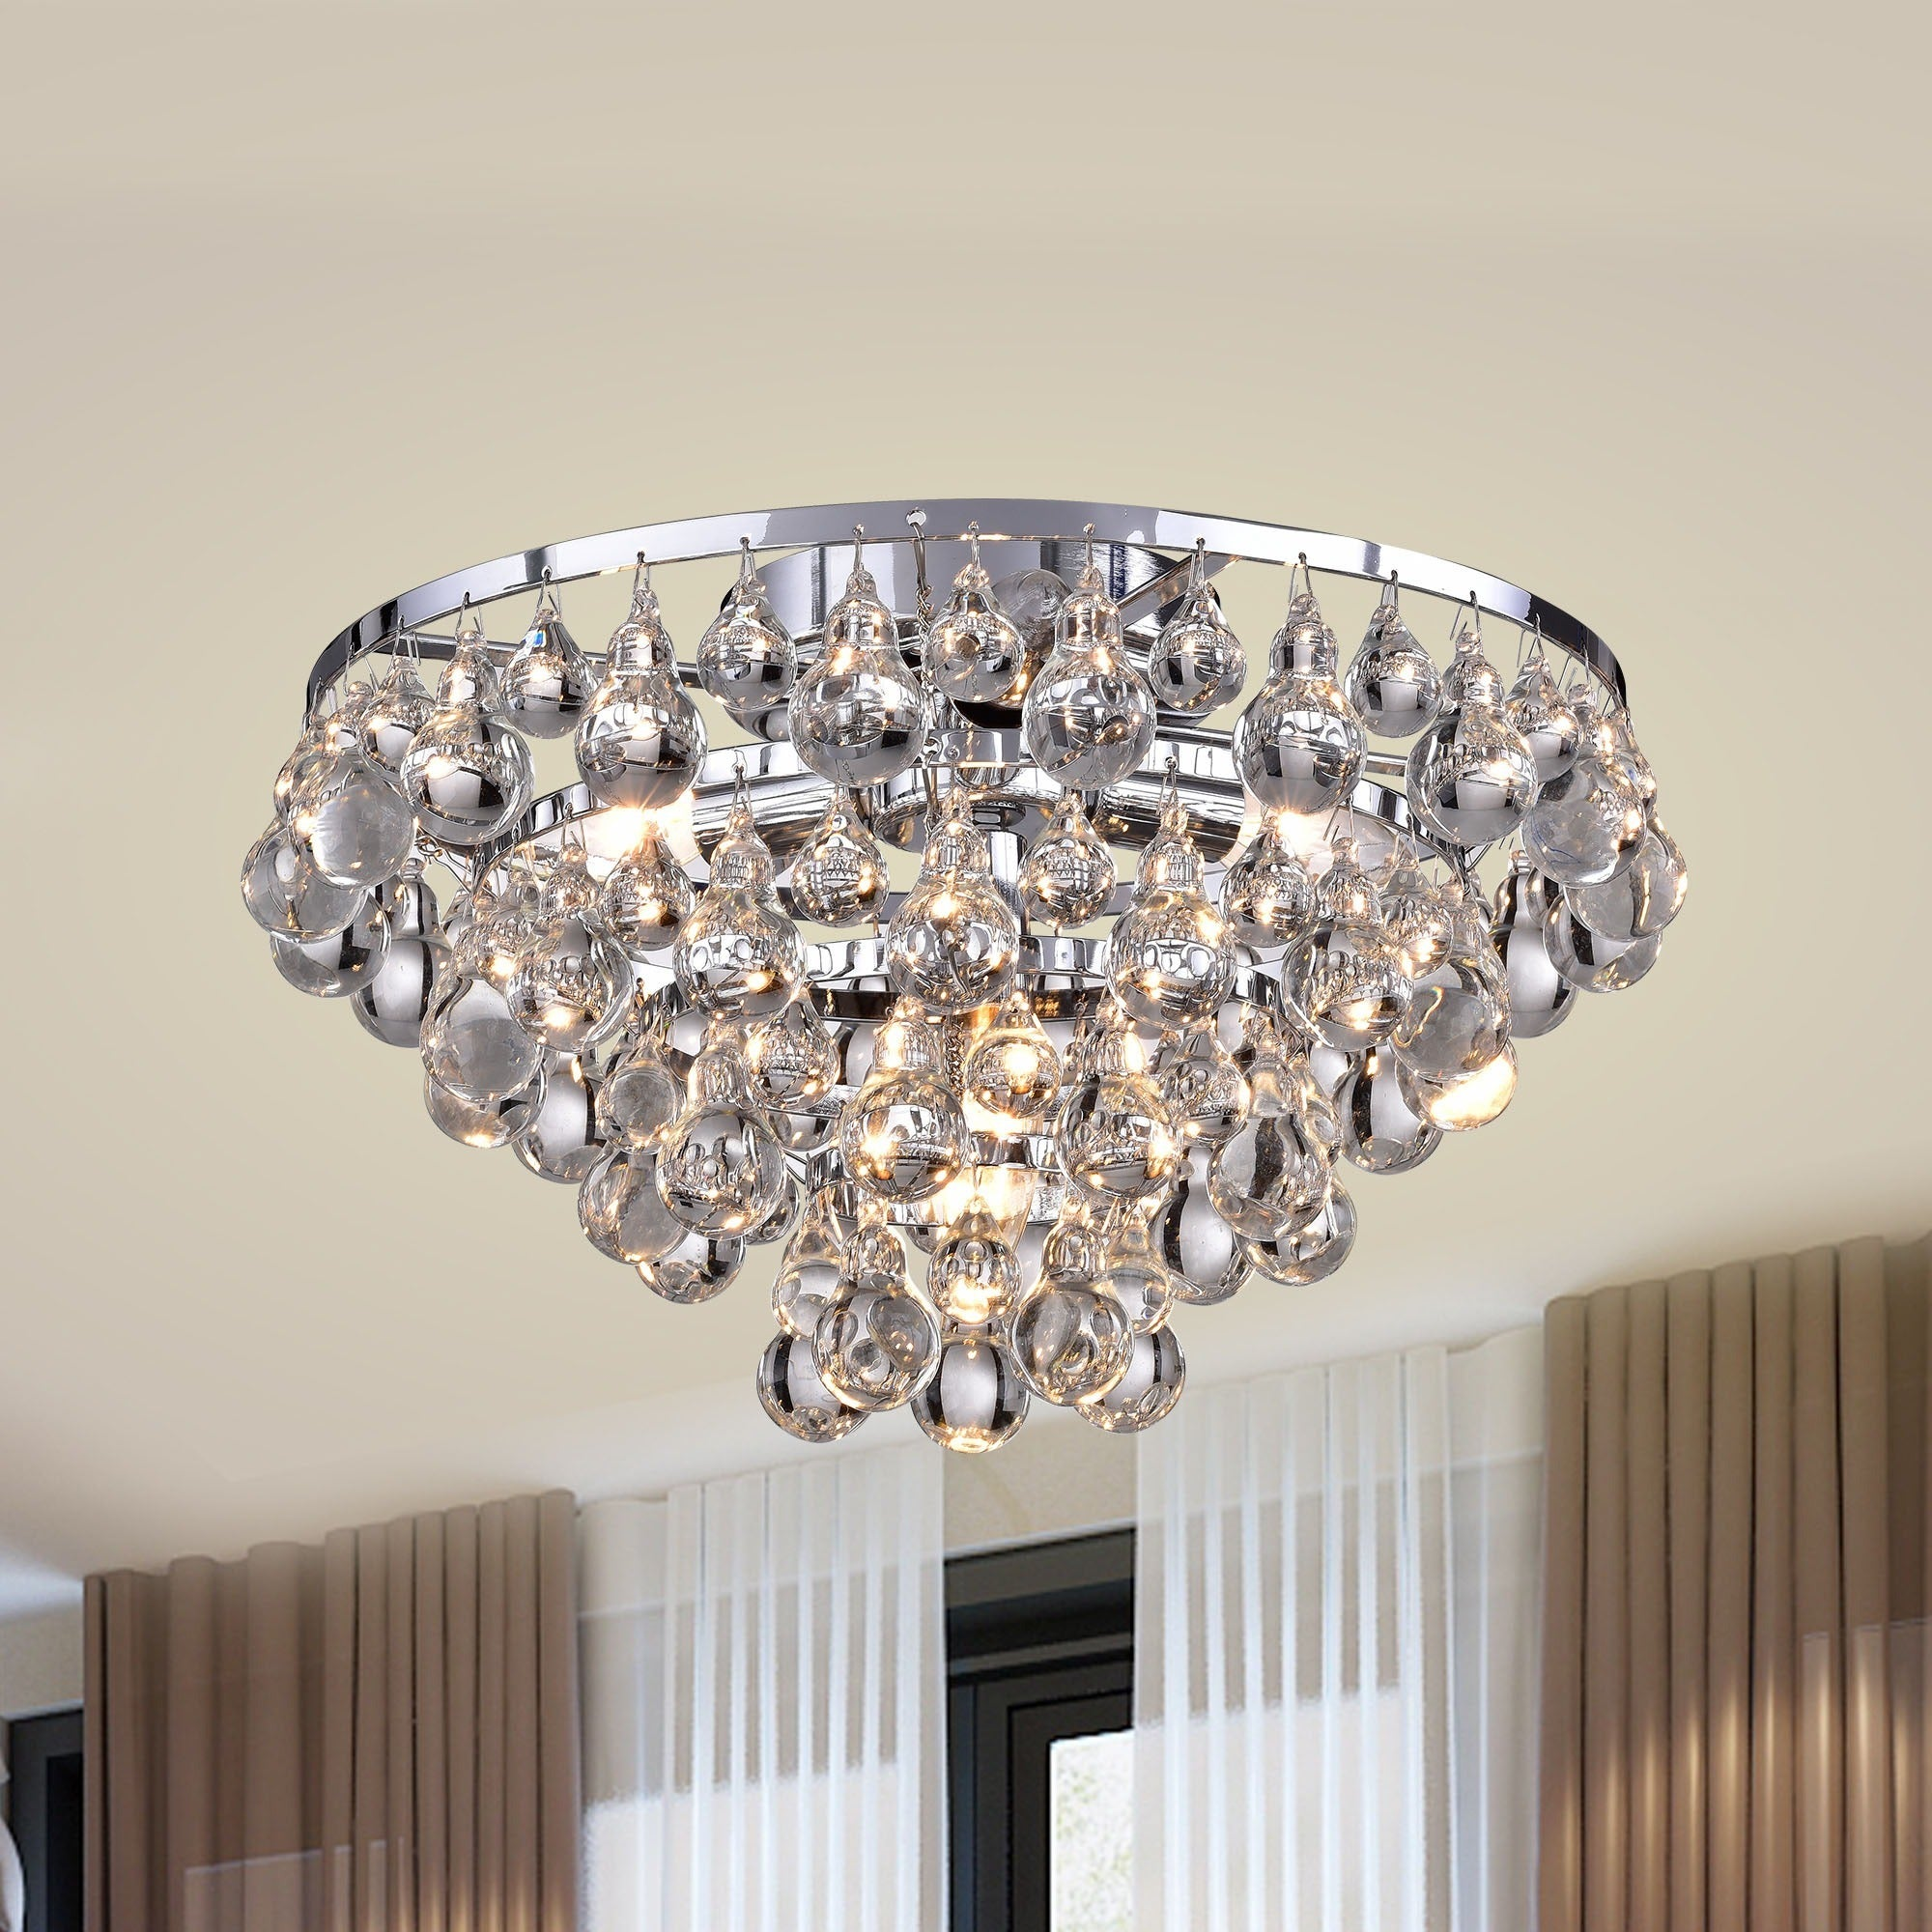 tranquil crystal bubble and chrome flushmount chandelier  free shippingtoday  overstockcom  . tranquil crystal bubble and chrome flushmount chandelier  free